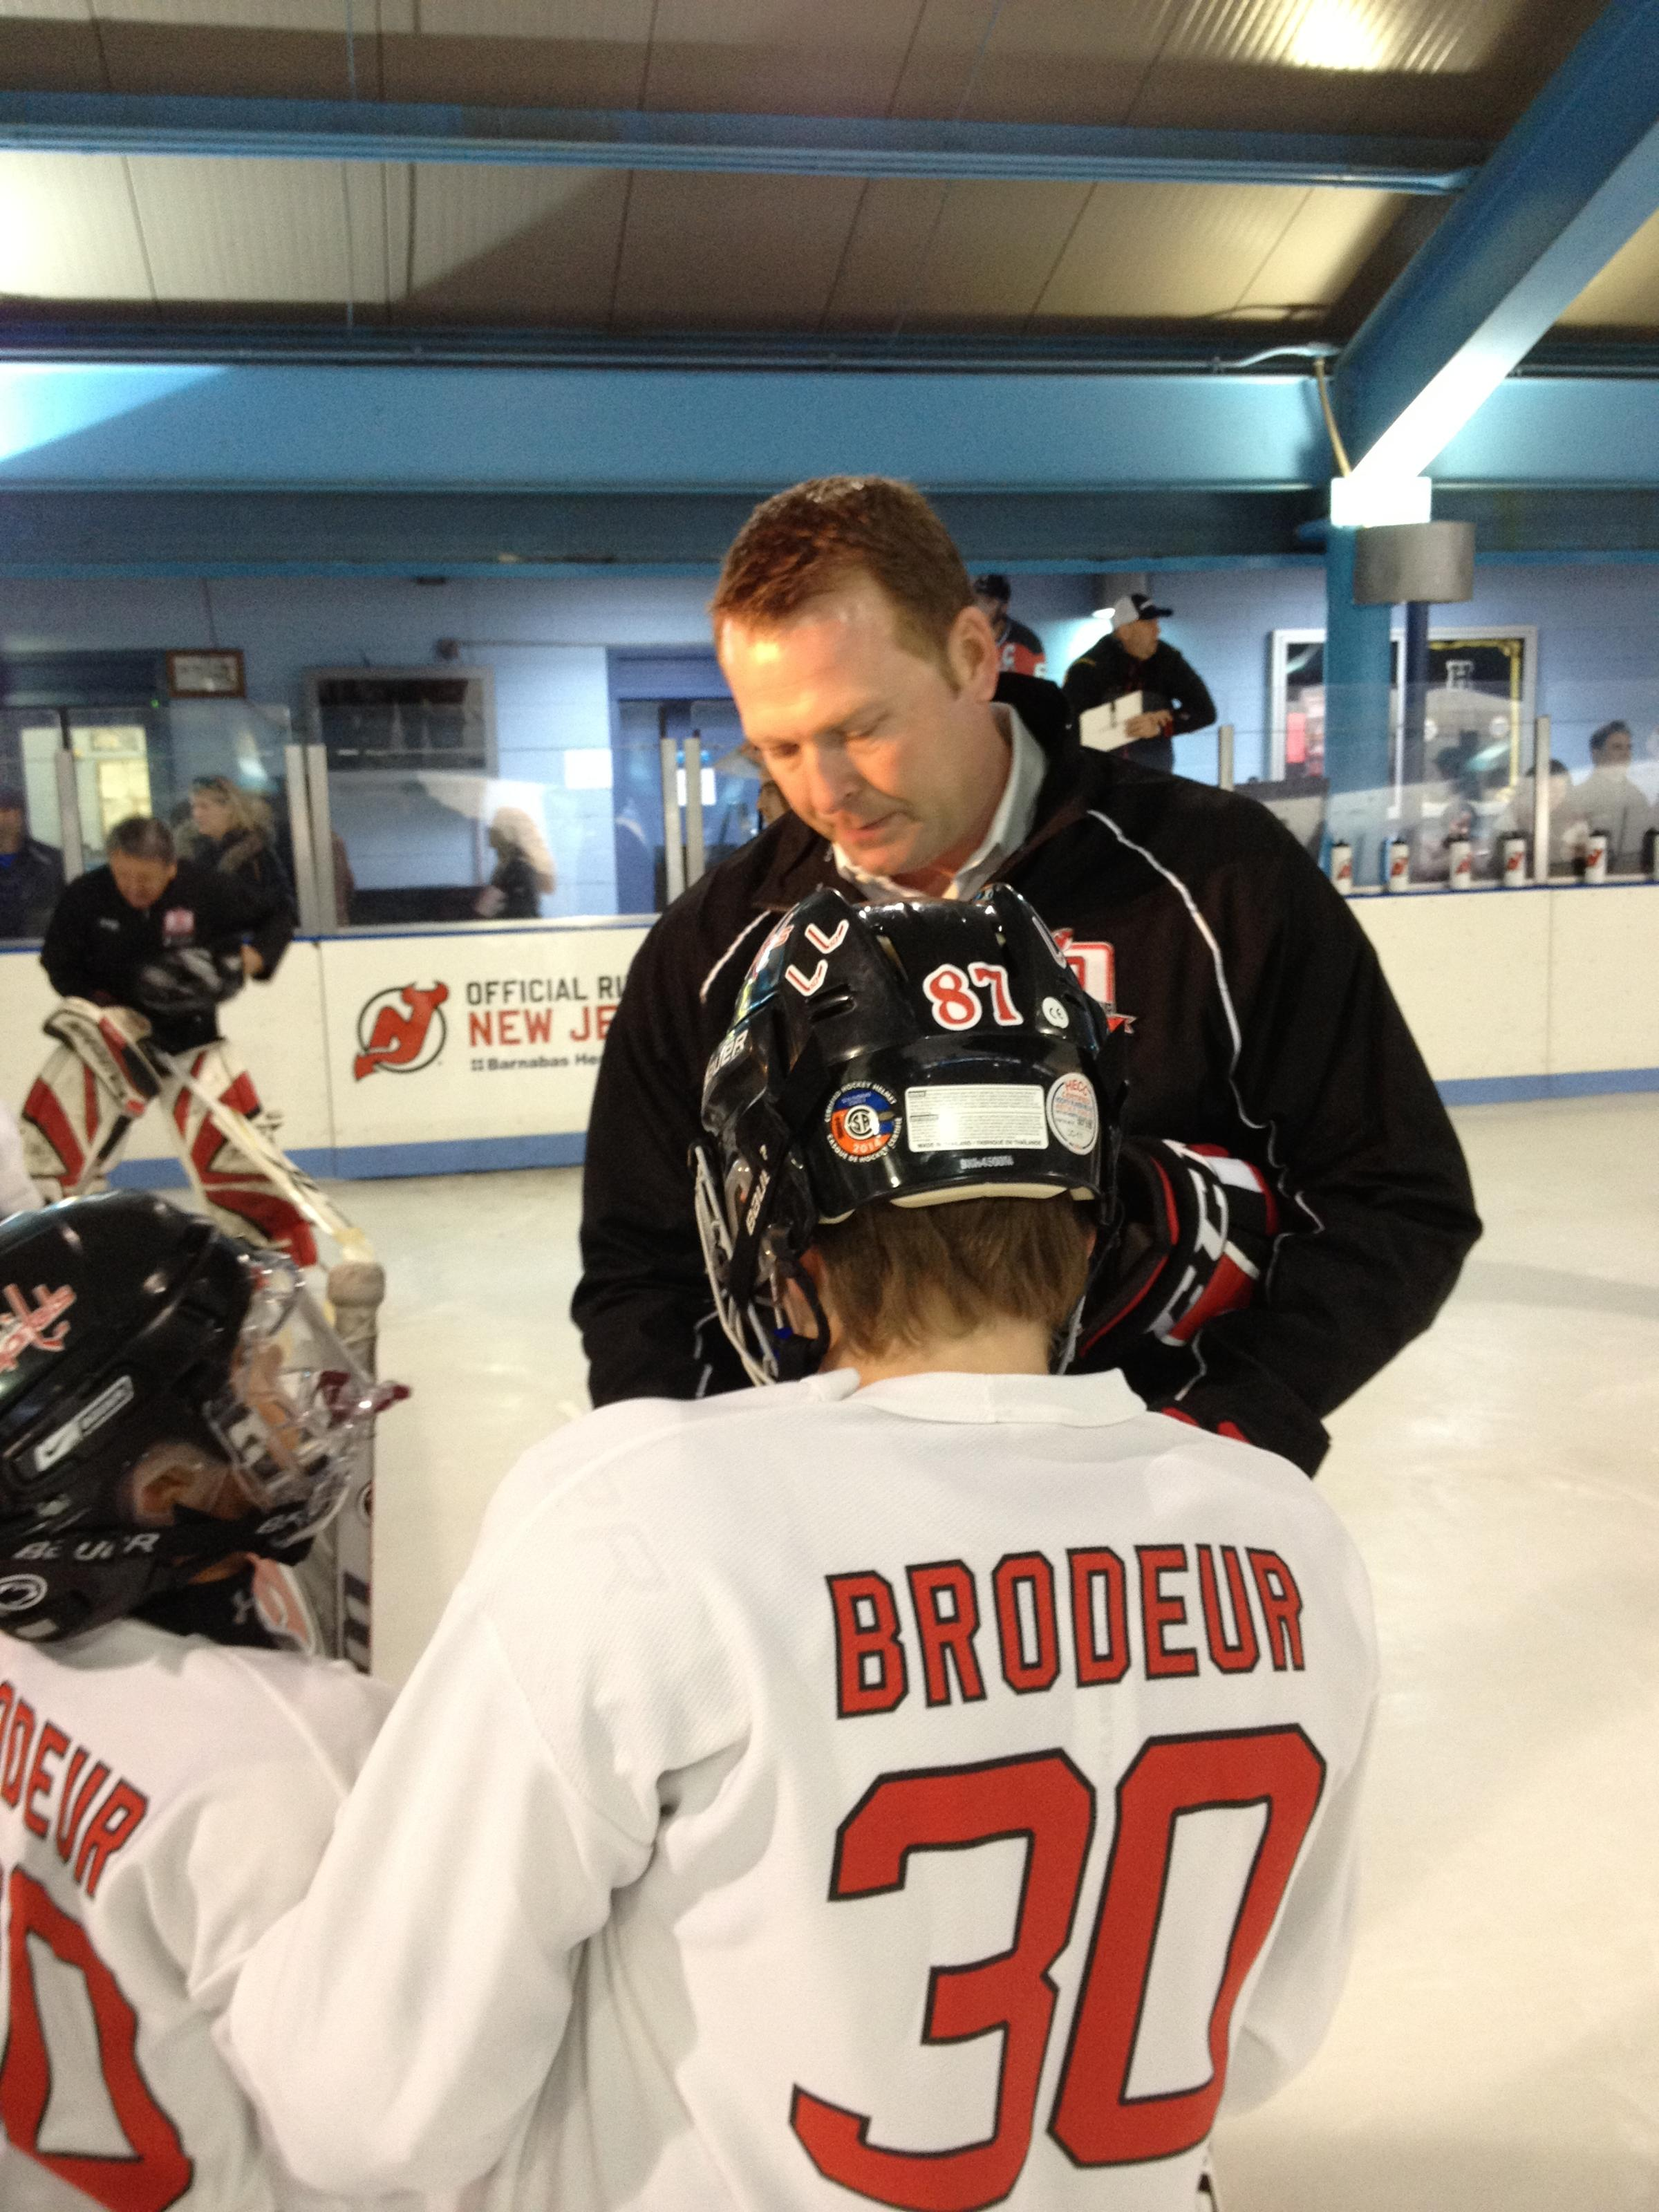 Former Devils Great Martin Brodeur Makes Nhl S Top 100 Wbgo